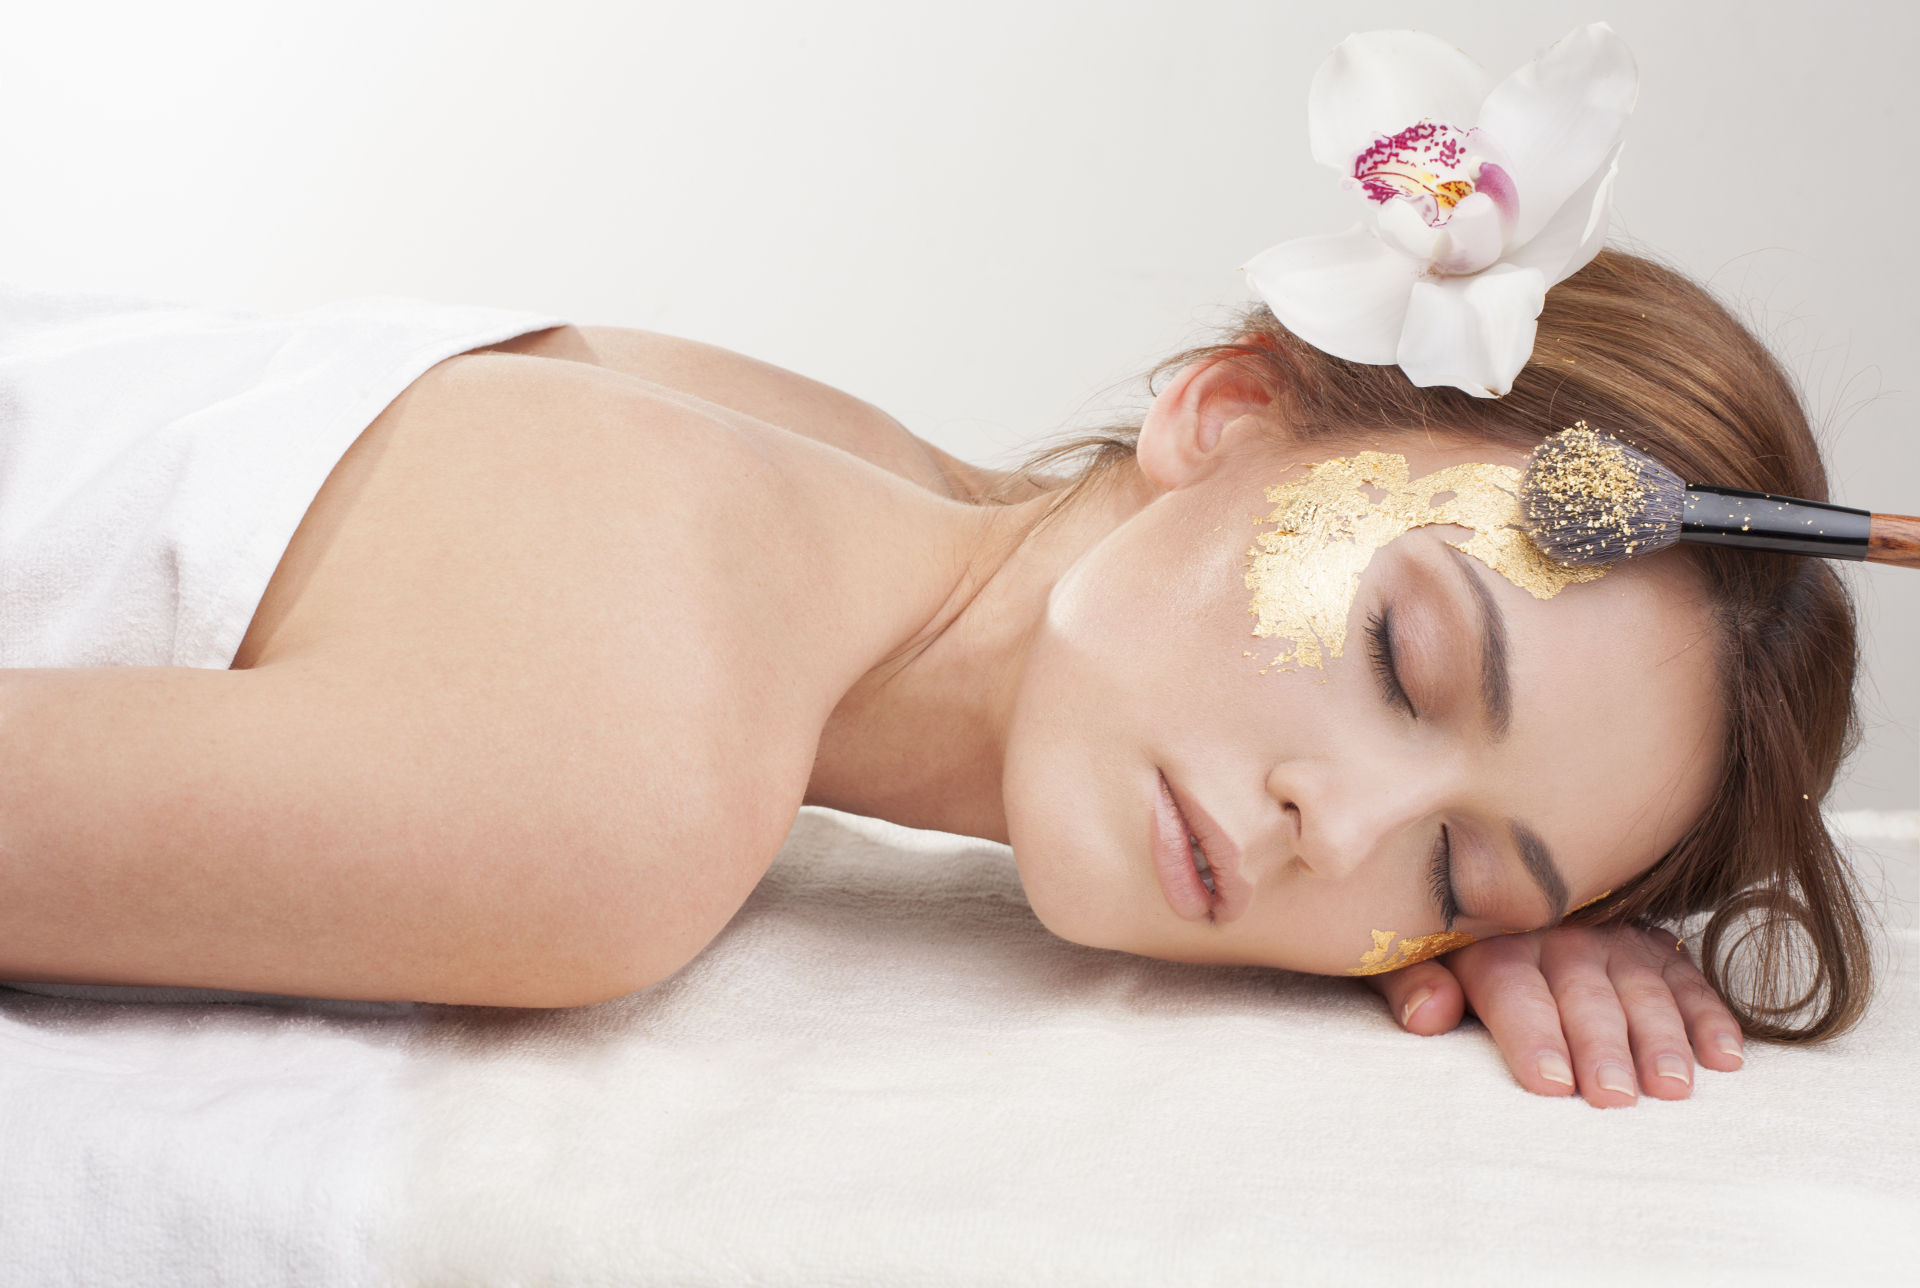 Luxury relaxation with gold leaf facial mask.